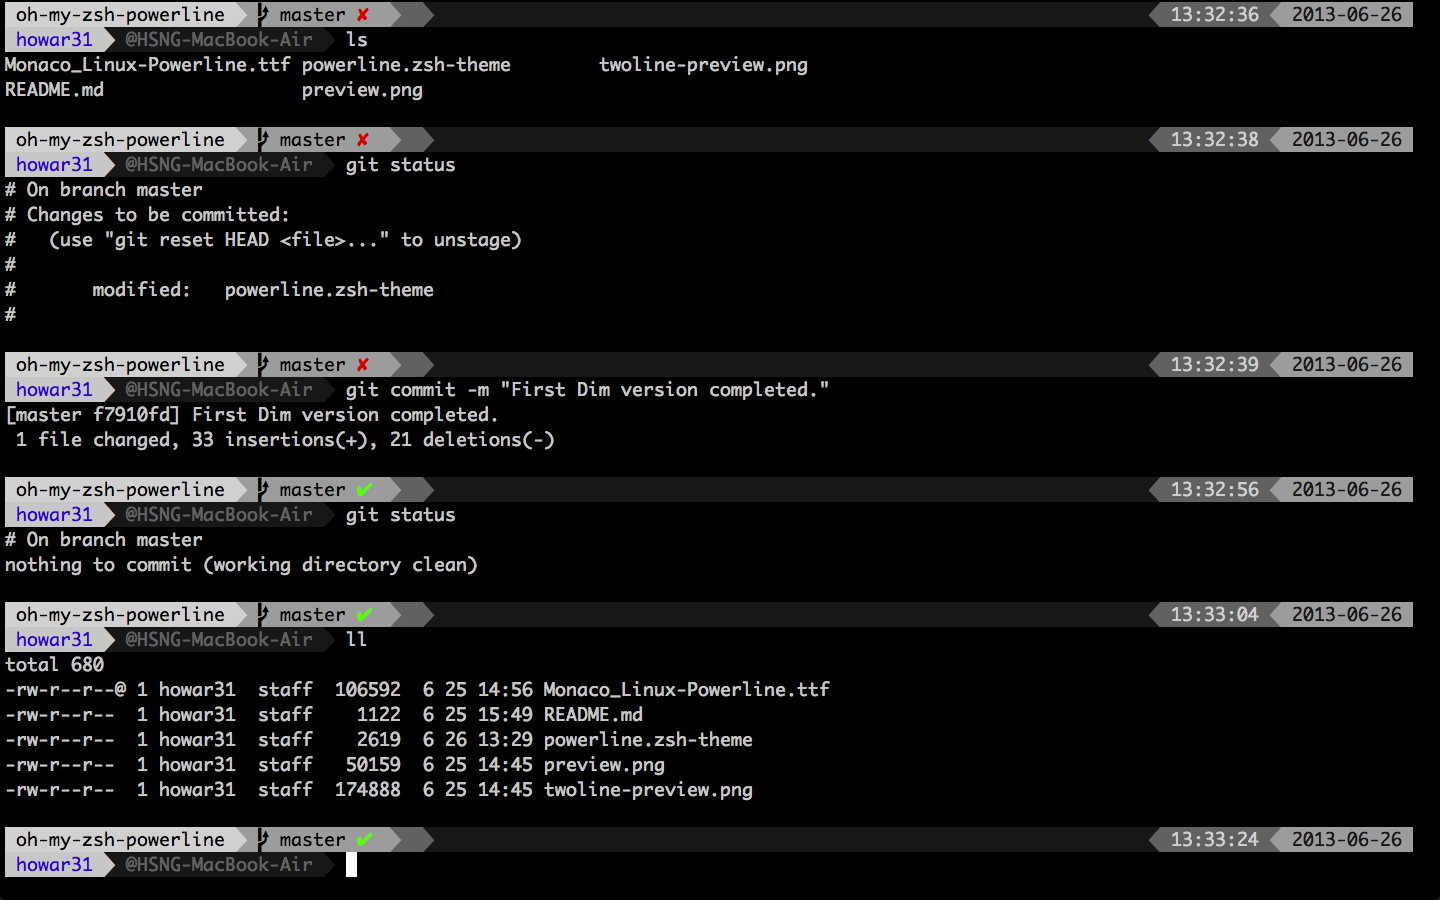 howar31/oh-my-zsh-powerline-theme oh-my-zsh Powerline style